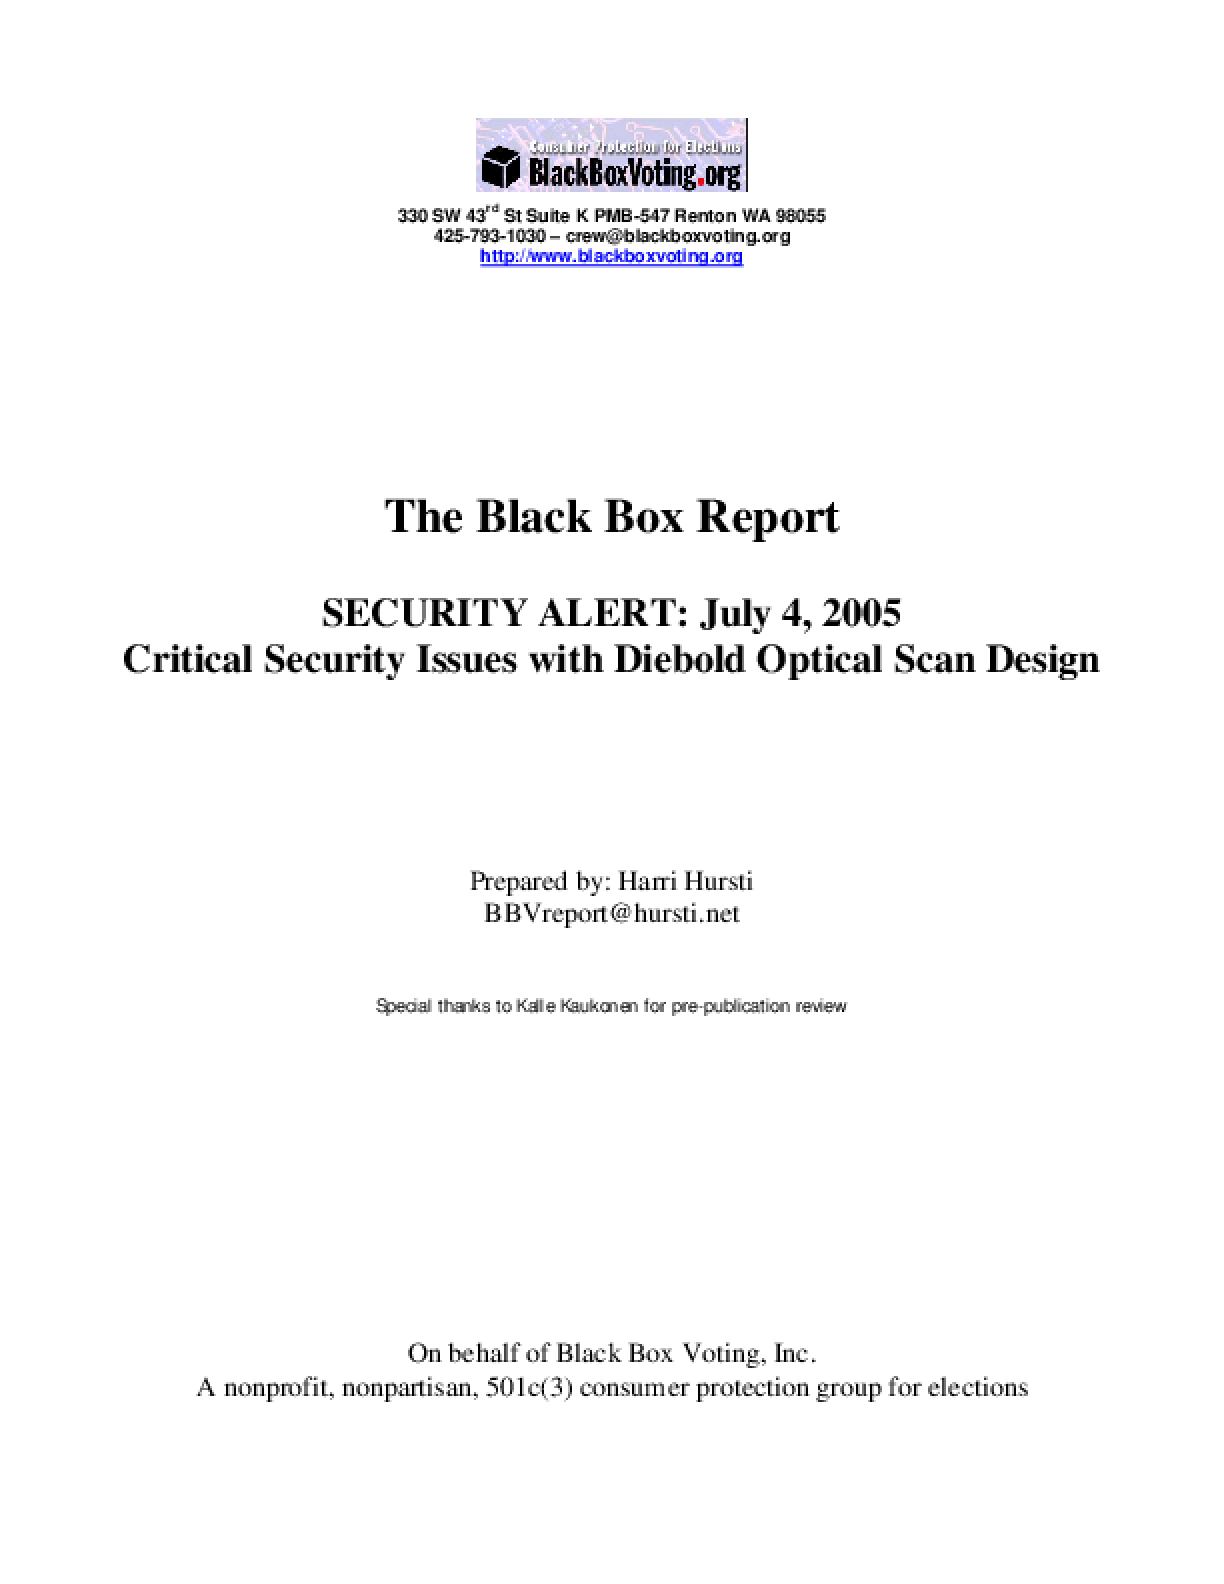 The Black Box Report Security Alert: July 4, 2005 Critical Security Issues with Diebold Optical Scan Design